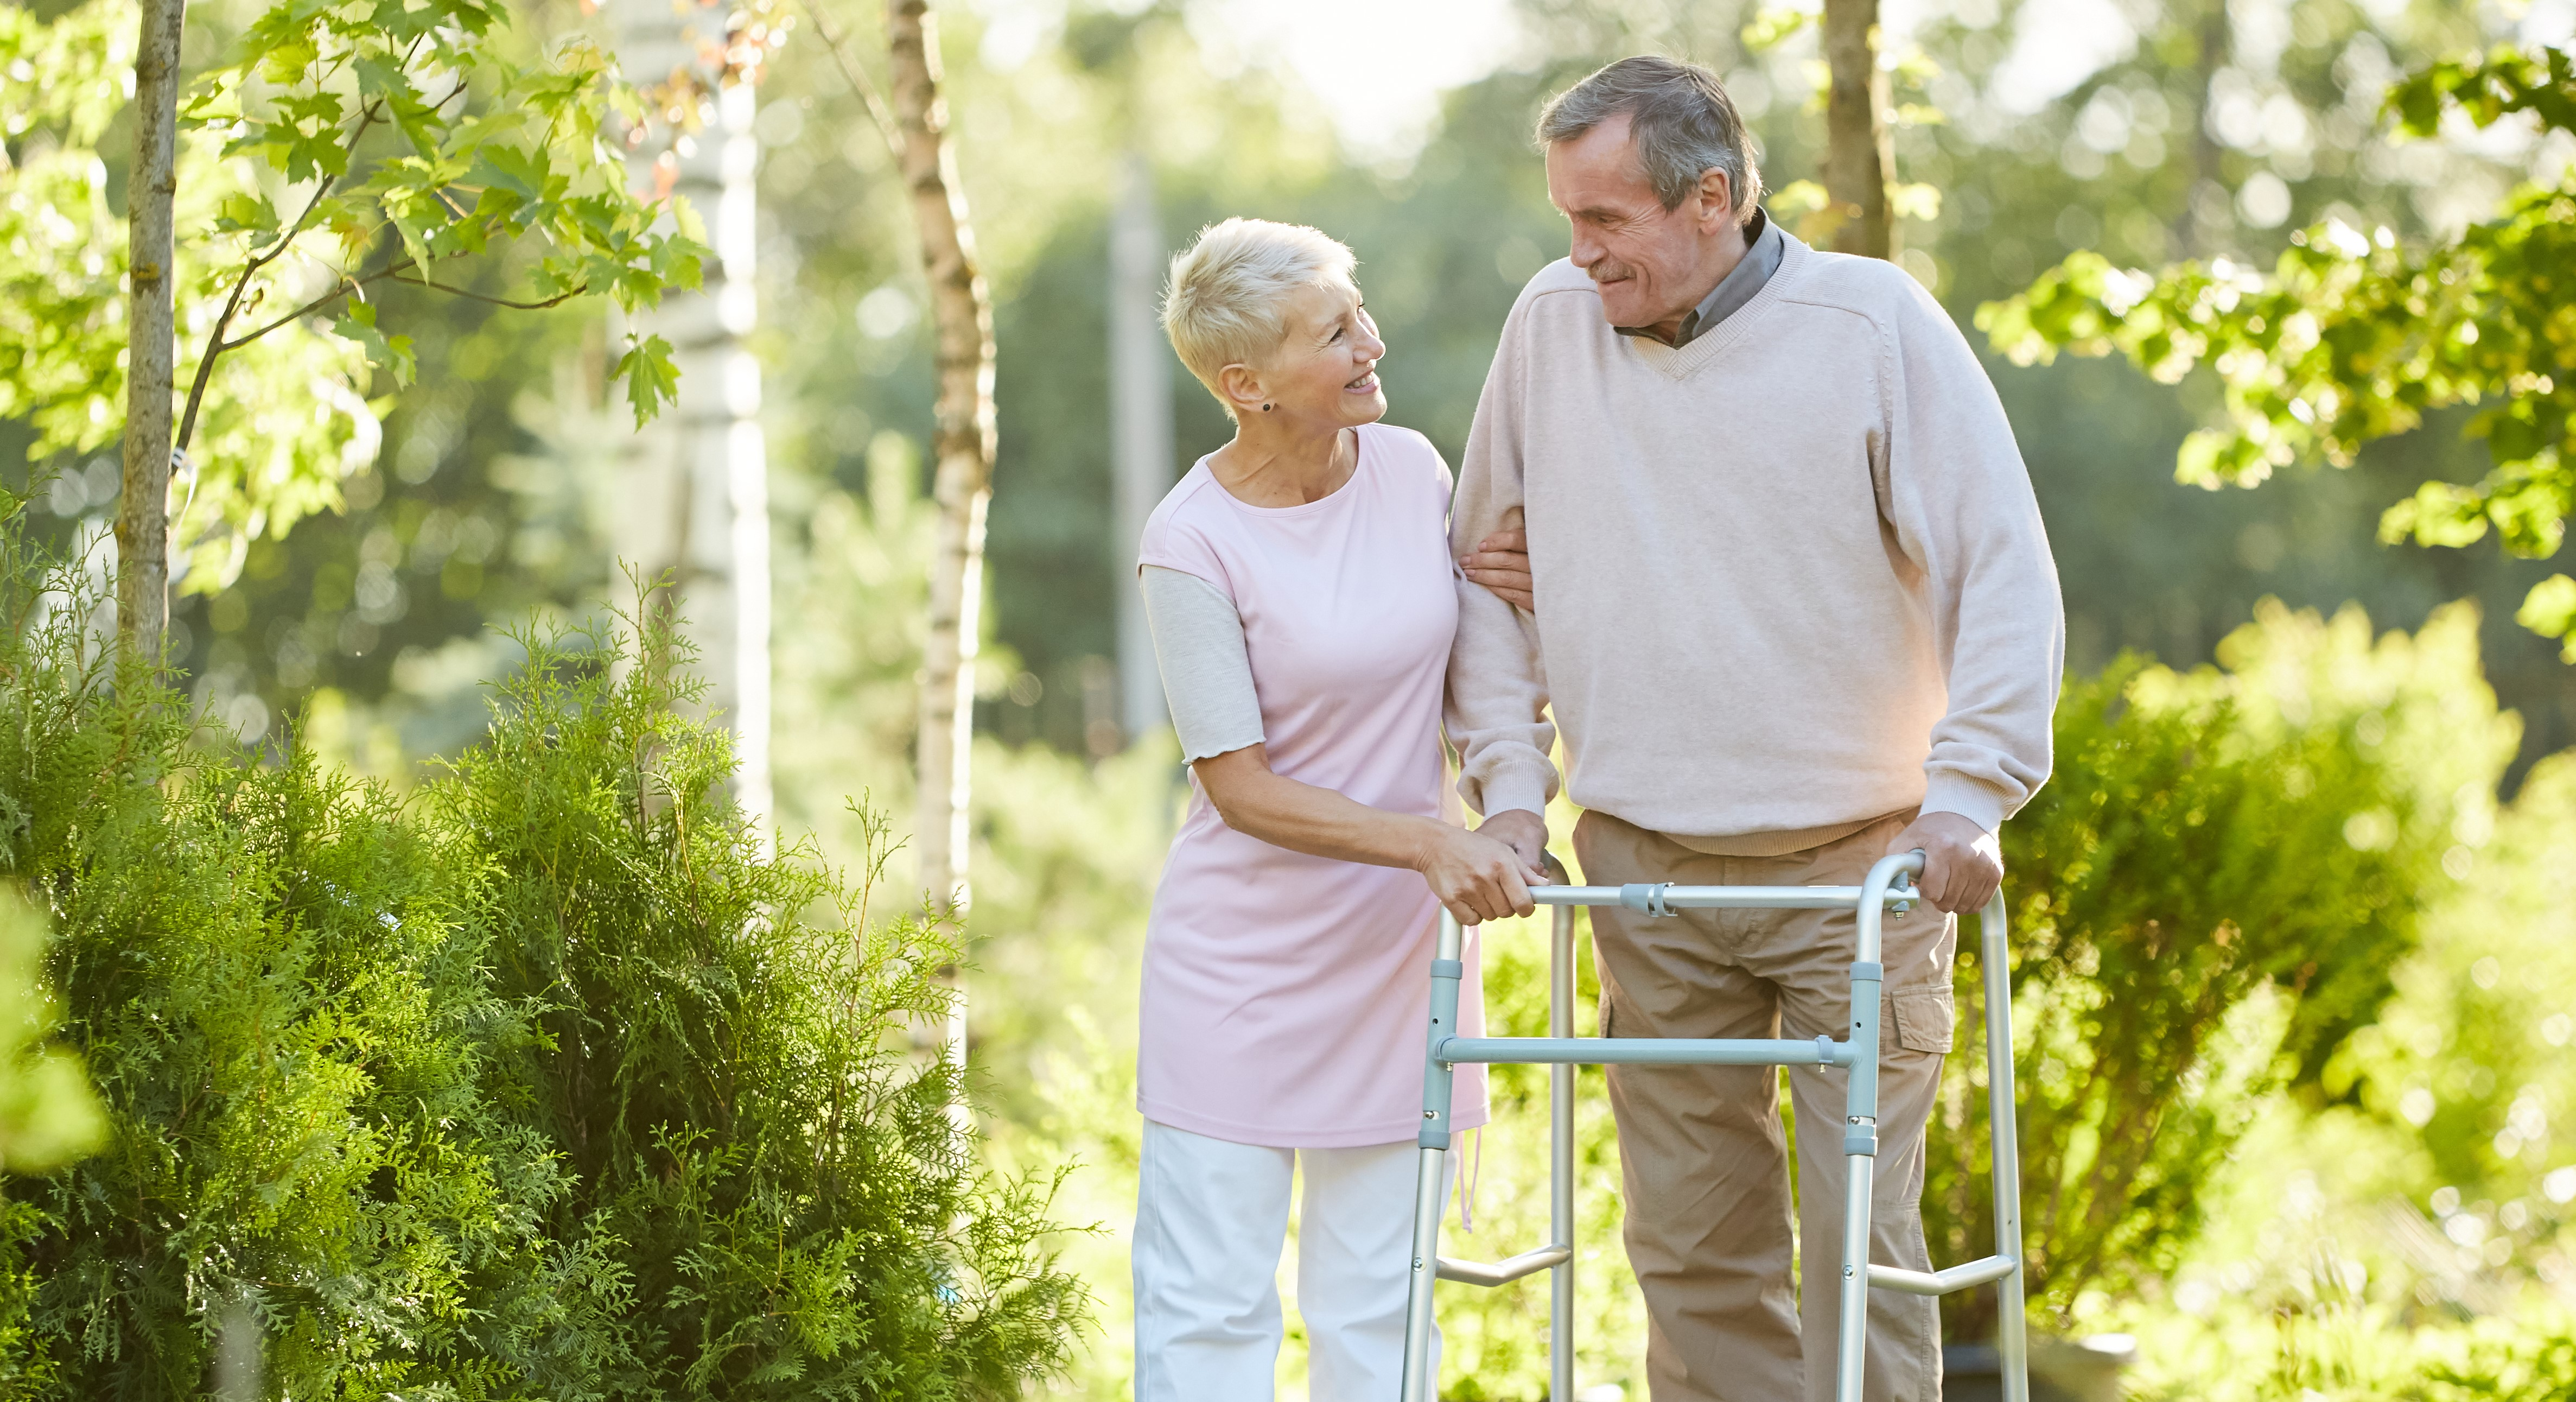 Woman walking with man after knee replacement surgery